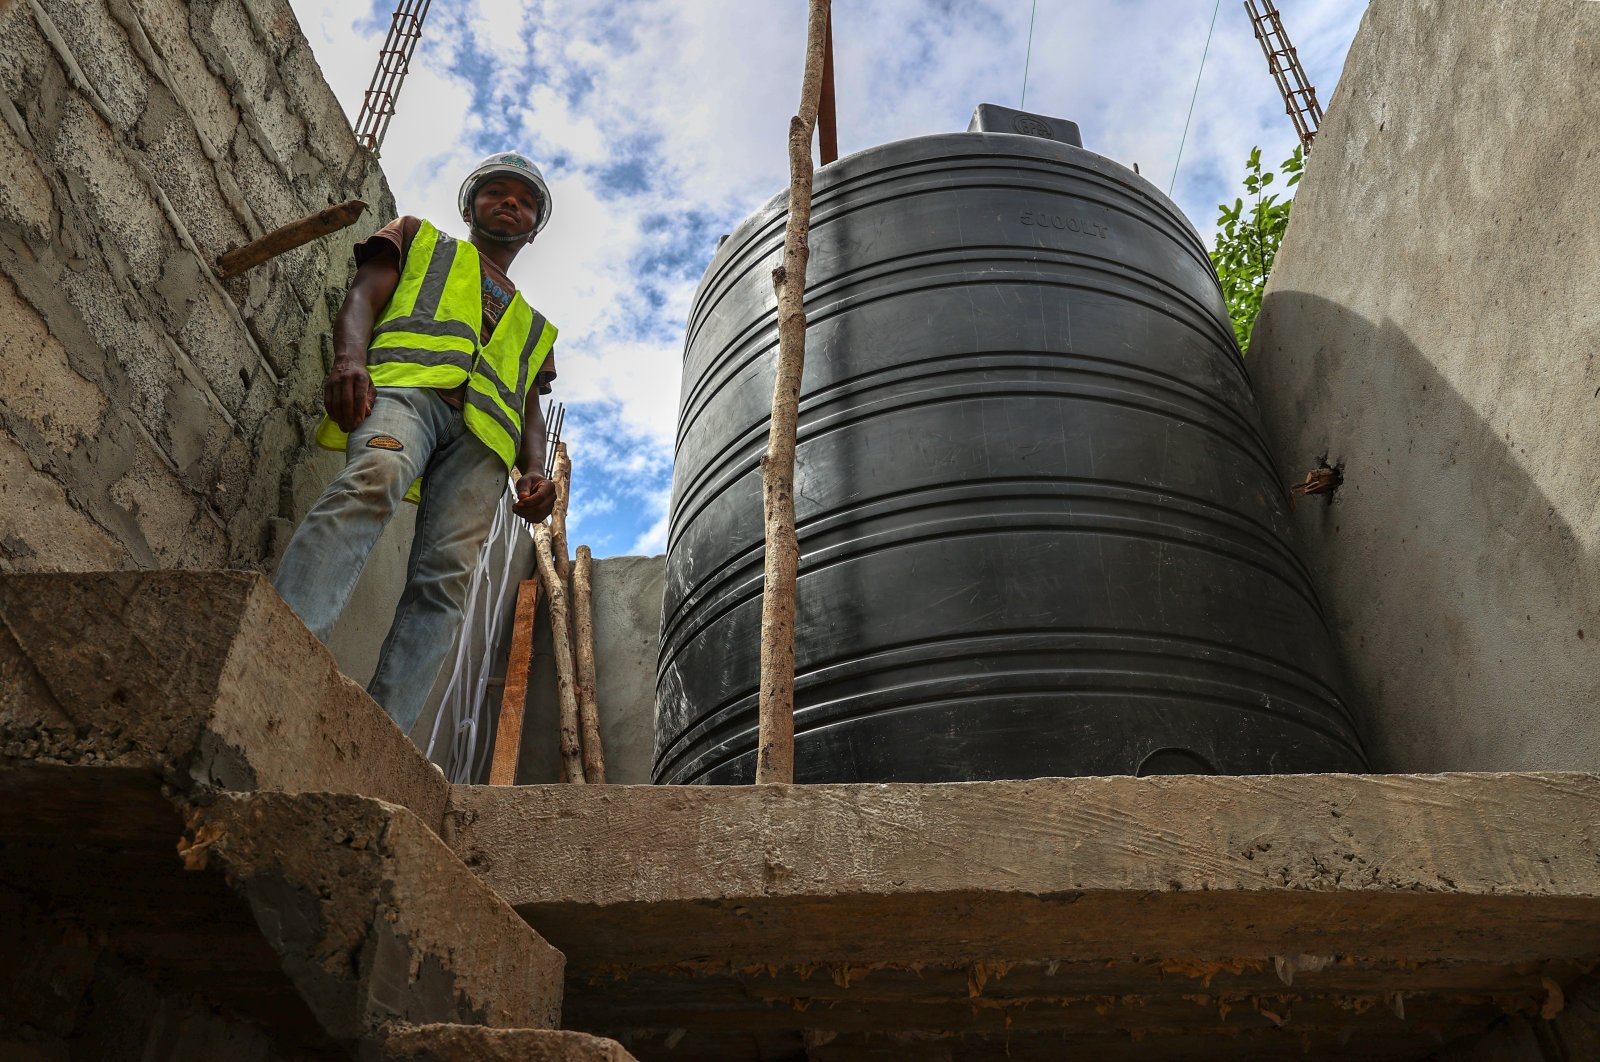 A worker stands next to a tank placed atop a water well under construction, in Boke, Guinea, July 27, 2021. (AA PHOTO)